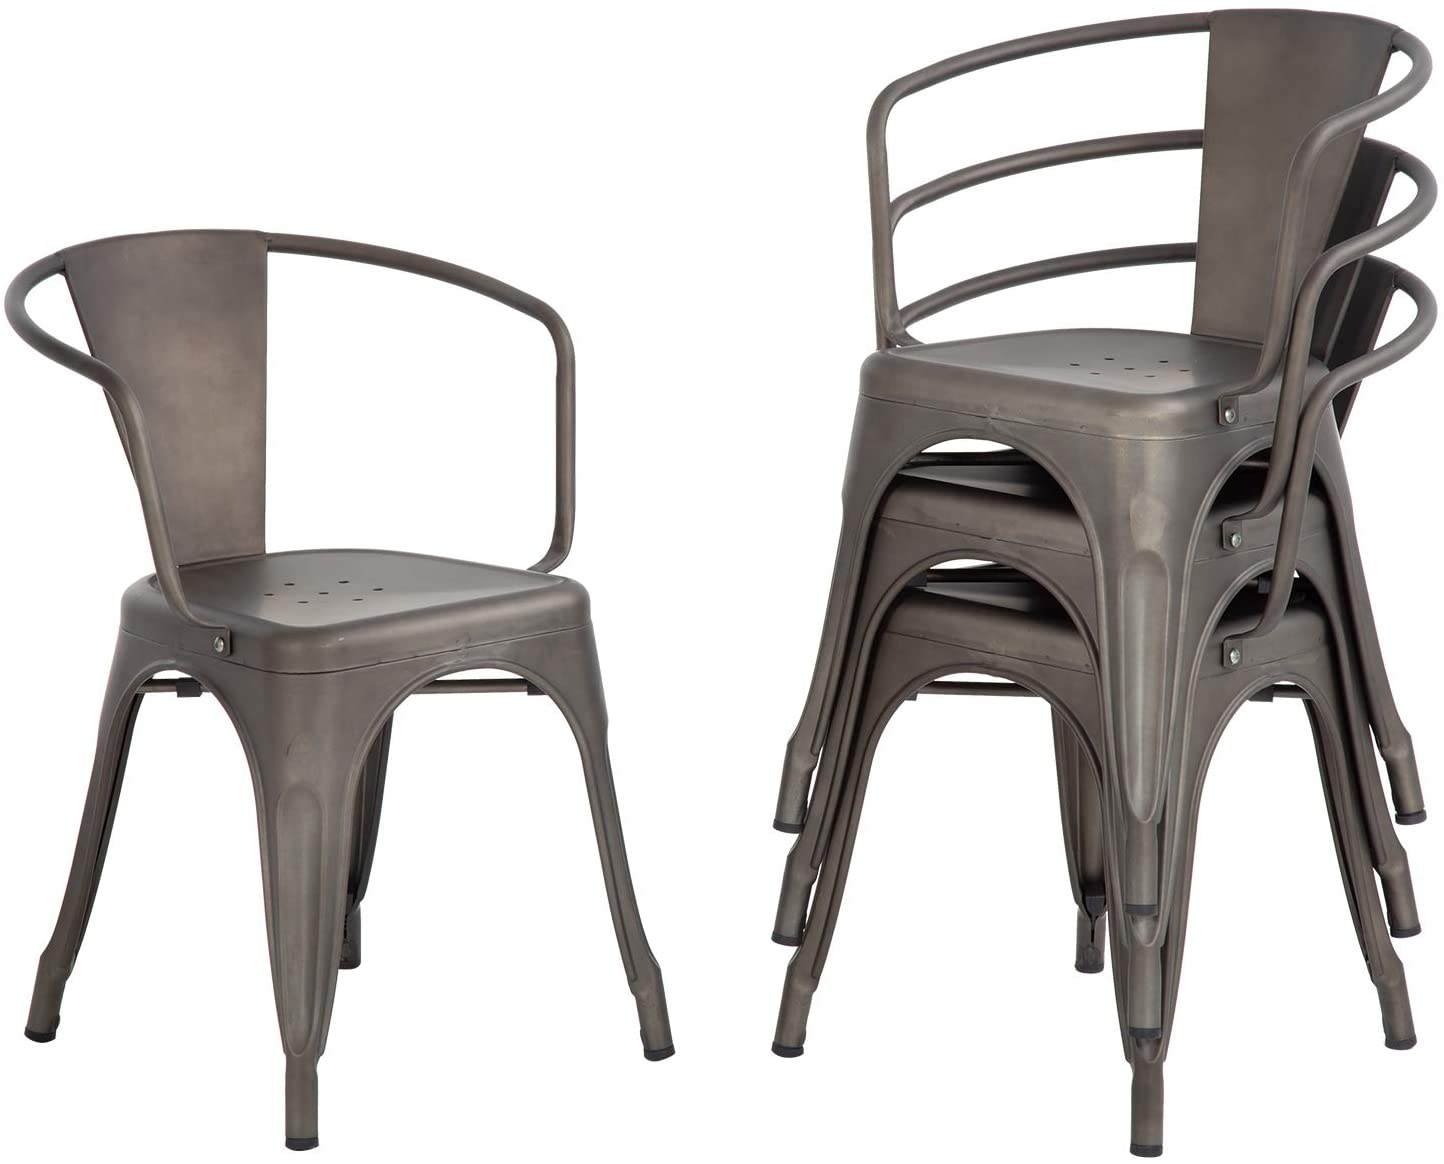 Metal Dining Chairs Set of 3 Patio Chiar Indoor Outdoor Metal Chairs  Kitchen Metal Chairs 3 Inch Seat Height Restaurant Chair 3LBS Weight  Capacity